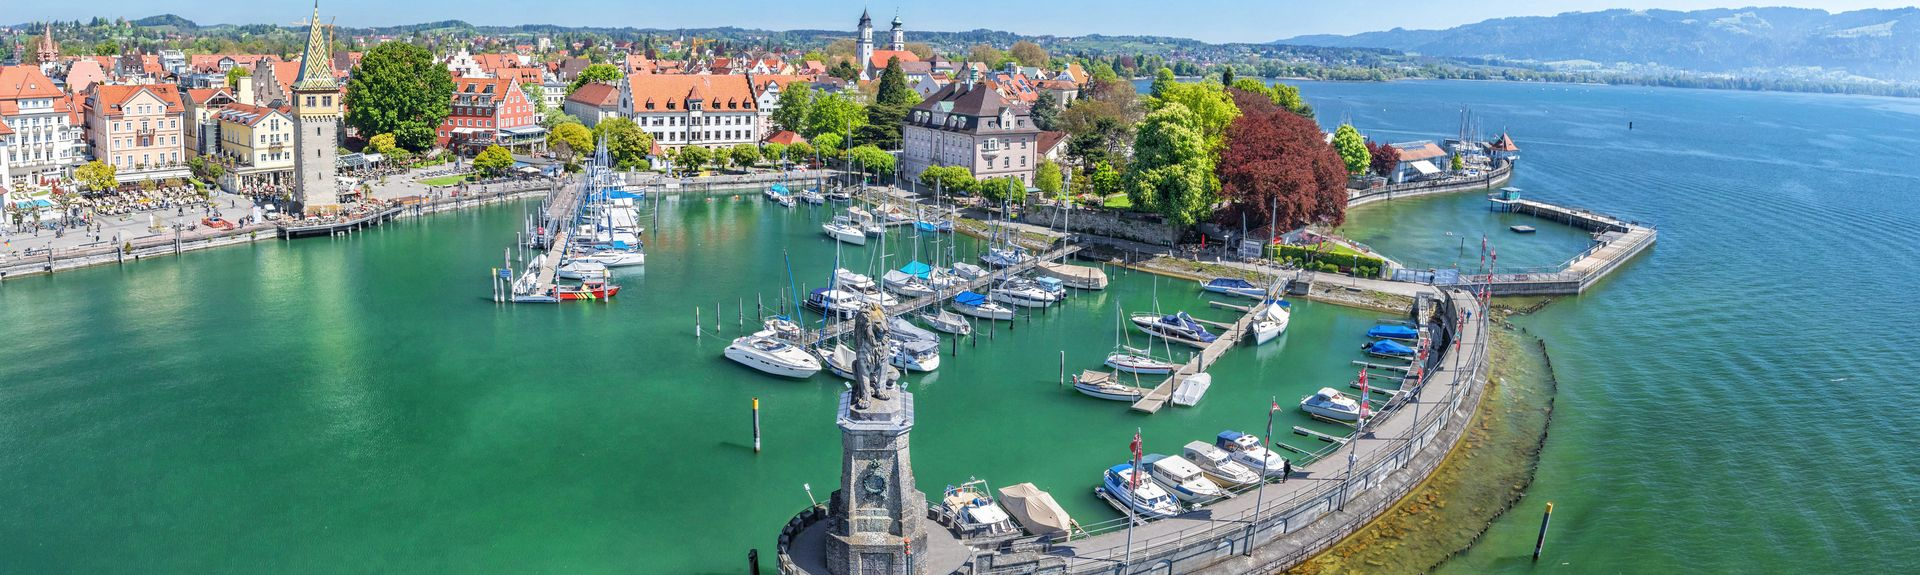 Lindau, Lindau, Germany